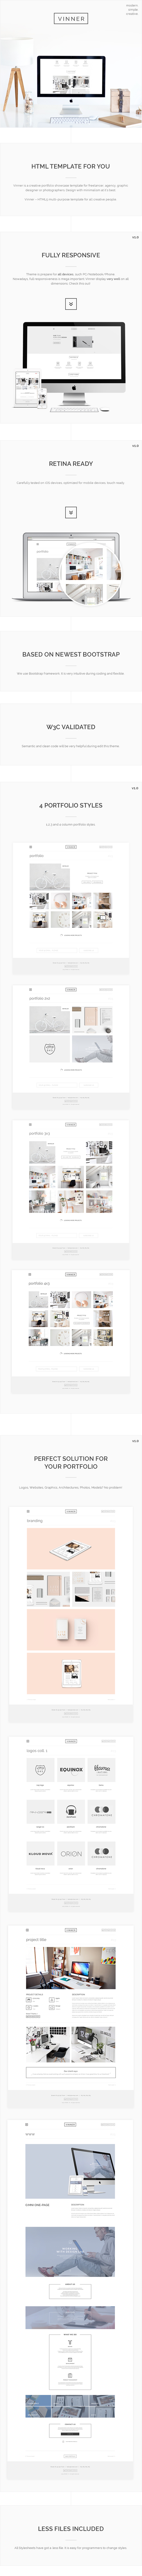 Vinner - Creative & Modern Multi-Purpose Template